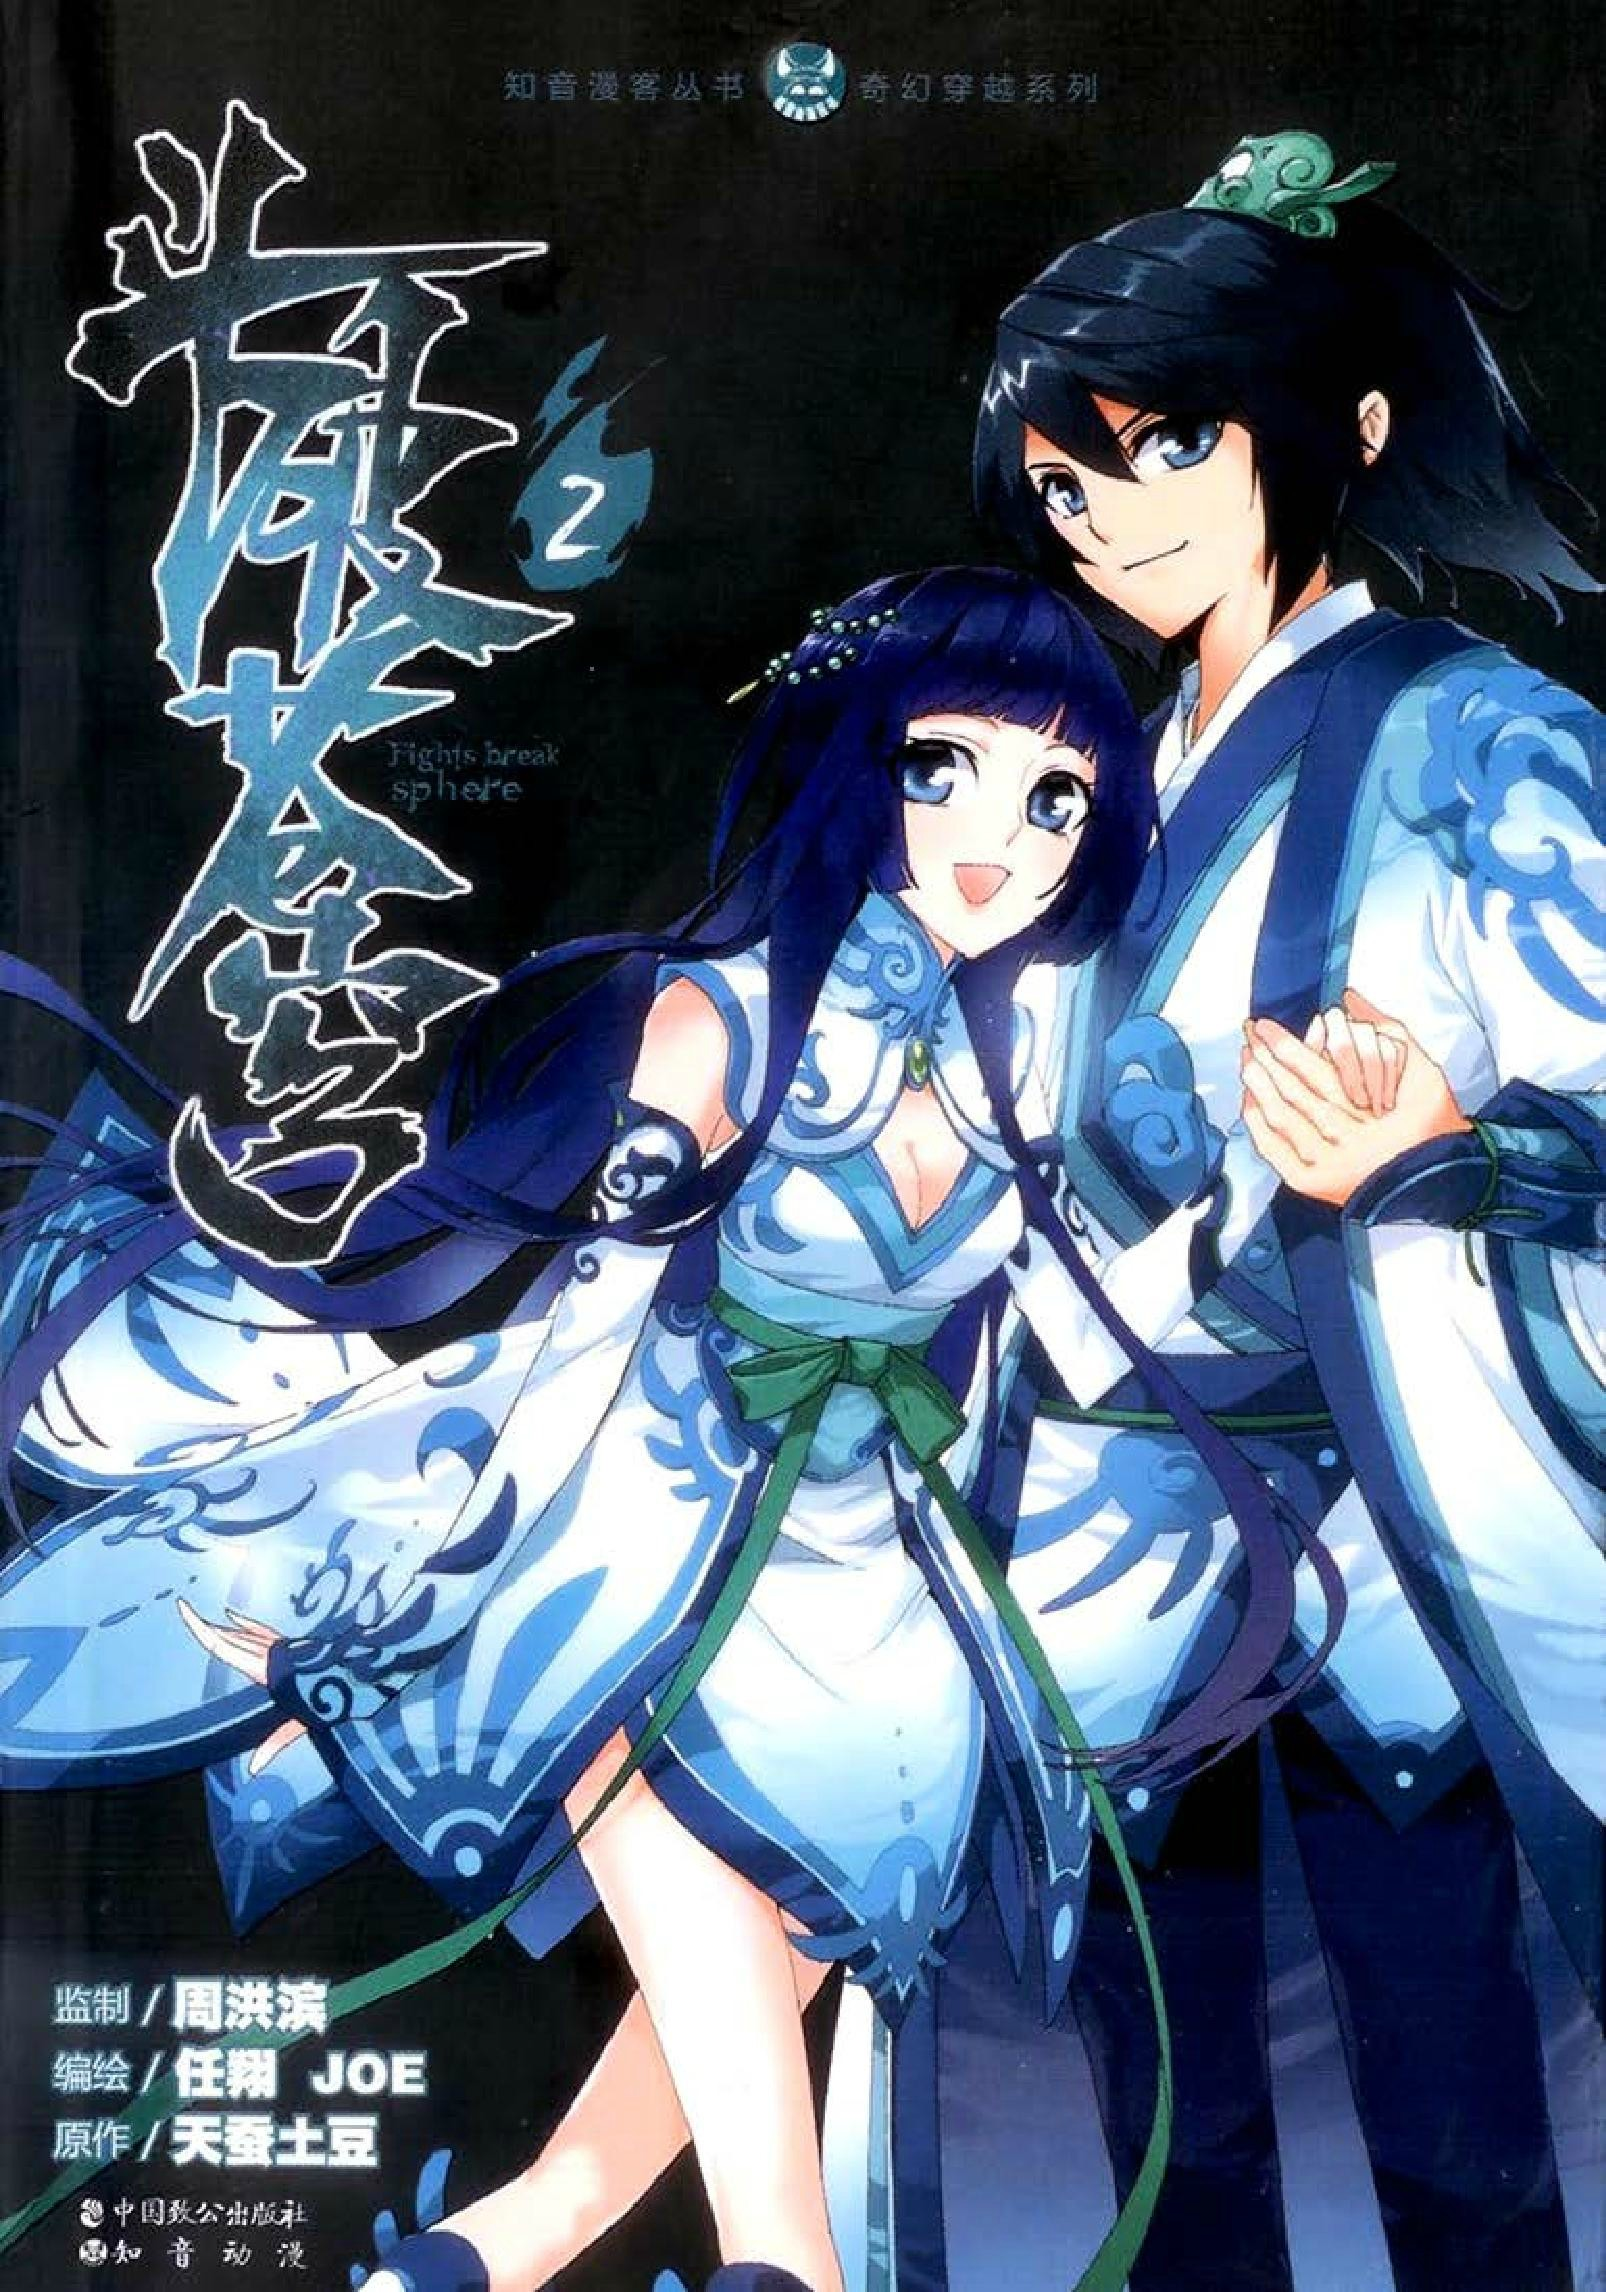 manhua_cover_art